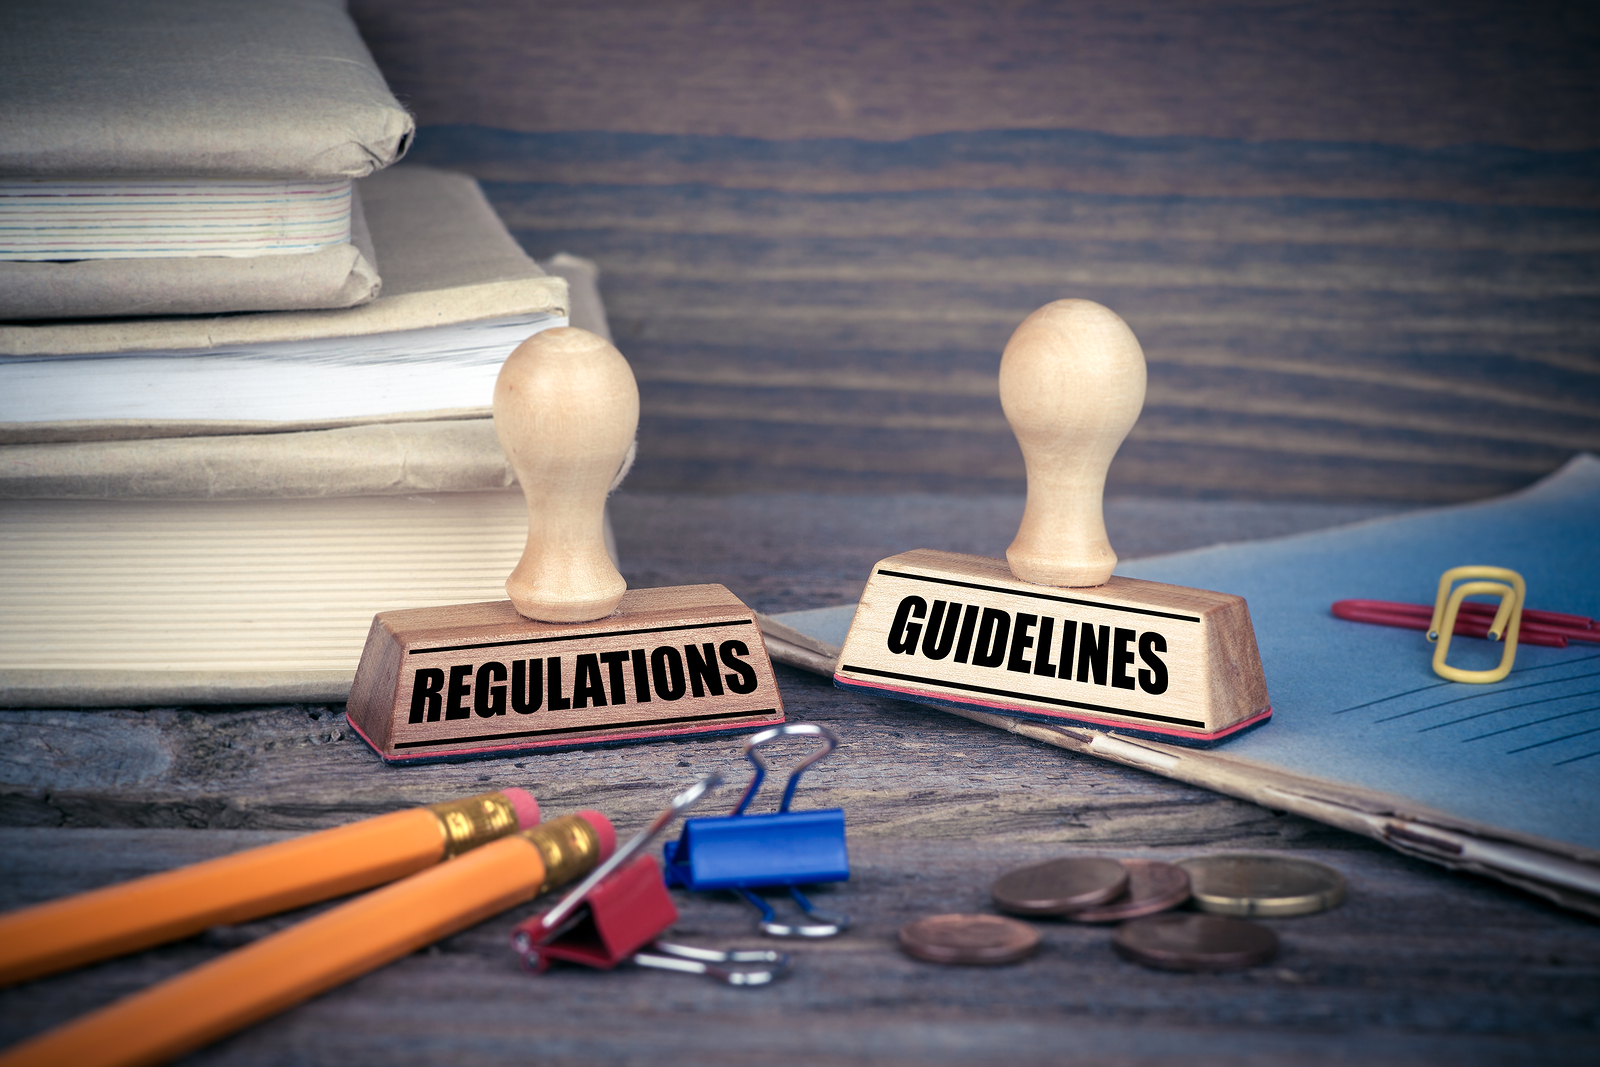 CCRC regulations graphic of guidelines